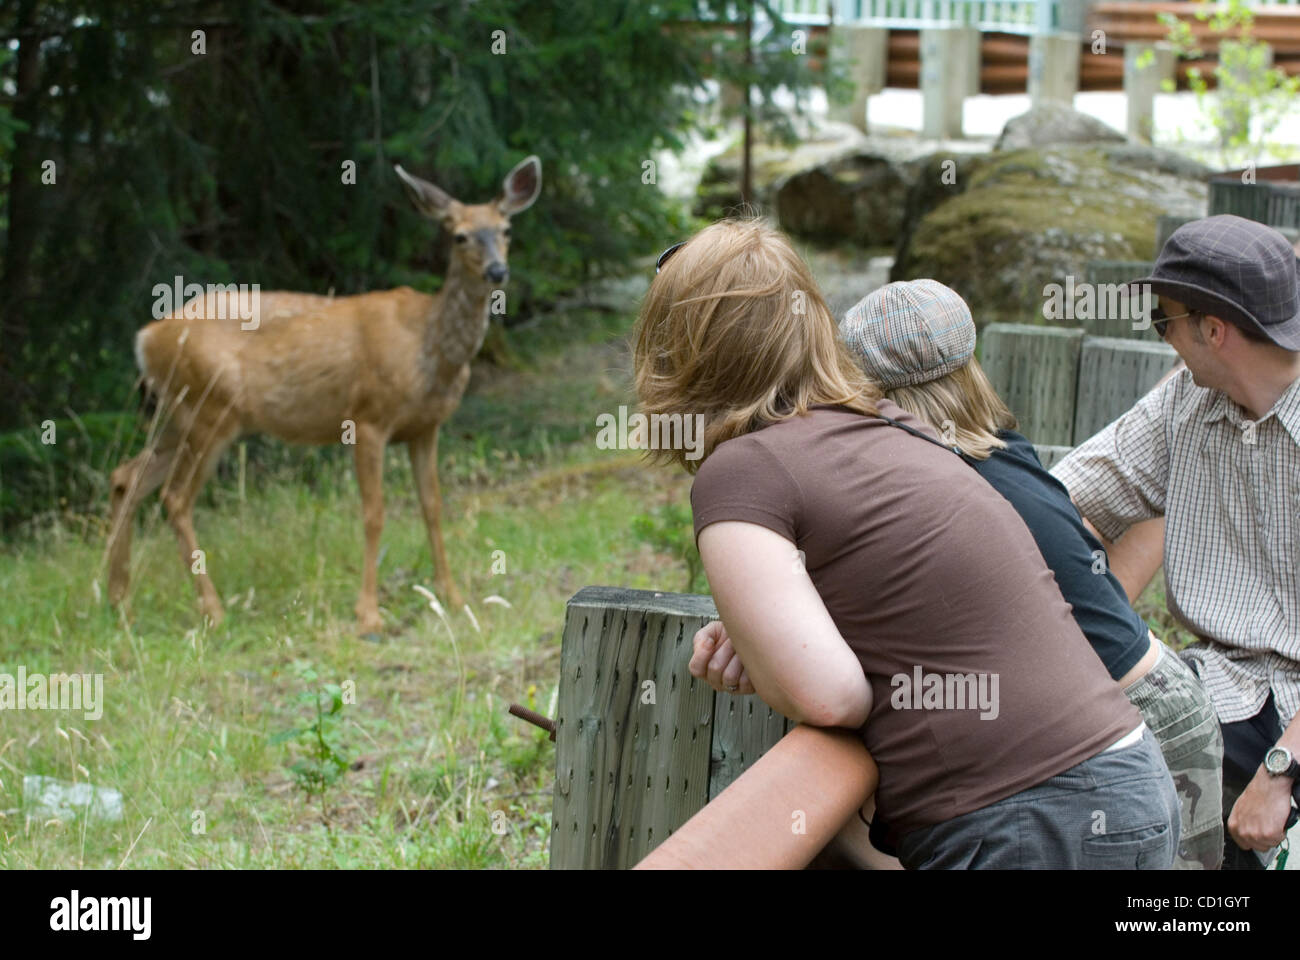 August 12, 2008, Newhalem, Washington - Visitors to the North Cascades National Park lean over a guard rail on the - Stock Image